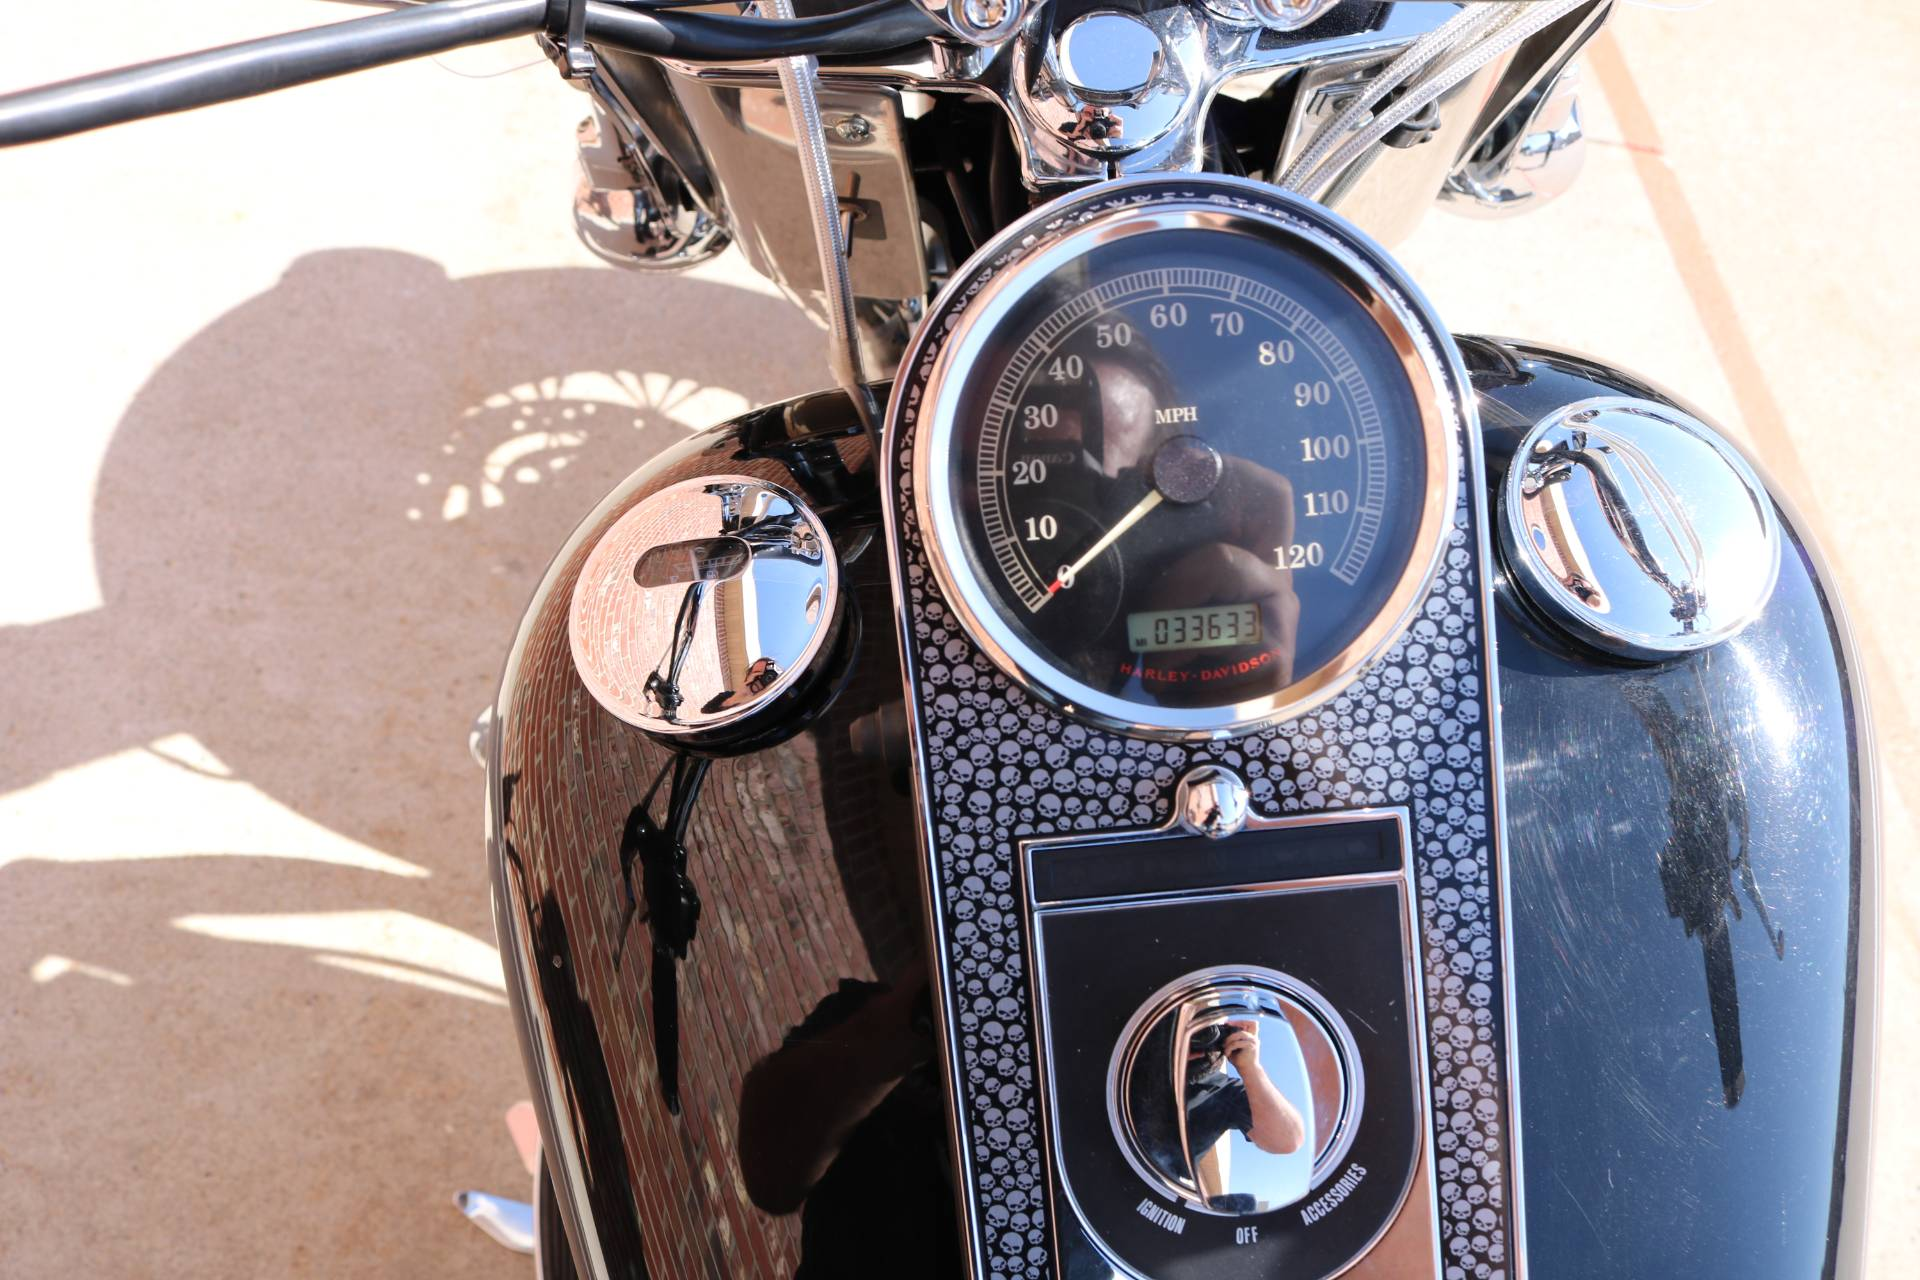 2007 Harley-Davidson FLSTC Heritage Softail® Classic Patriot Special Edition in Ames, Iowa - Photo 7